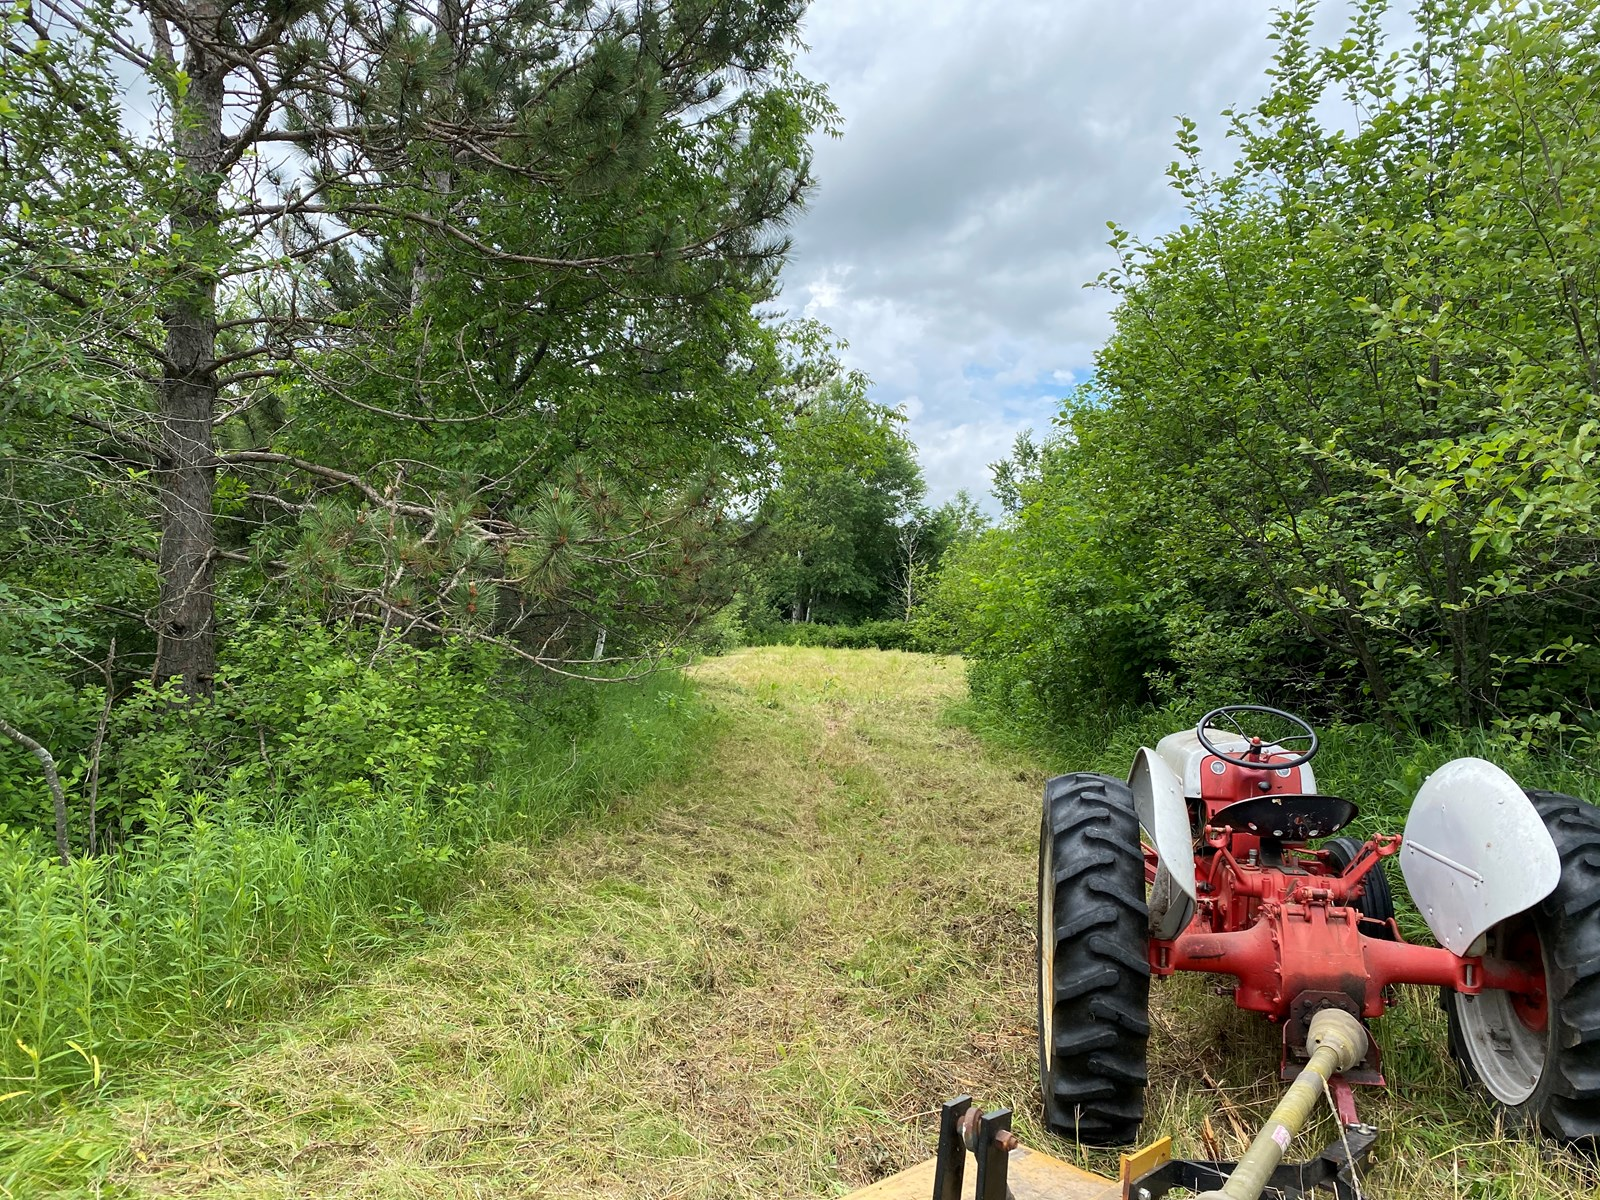 Acreage for Sale in Finlayson MN for Hunting , Hobby Farm